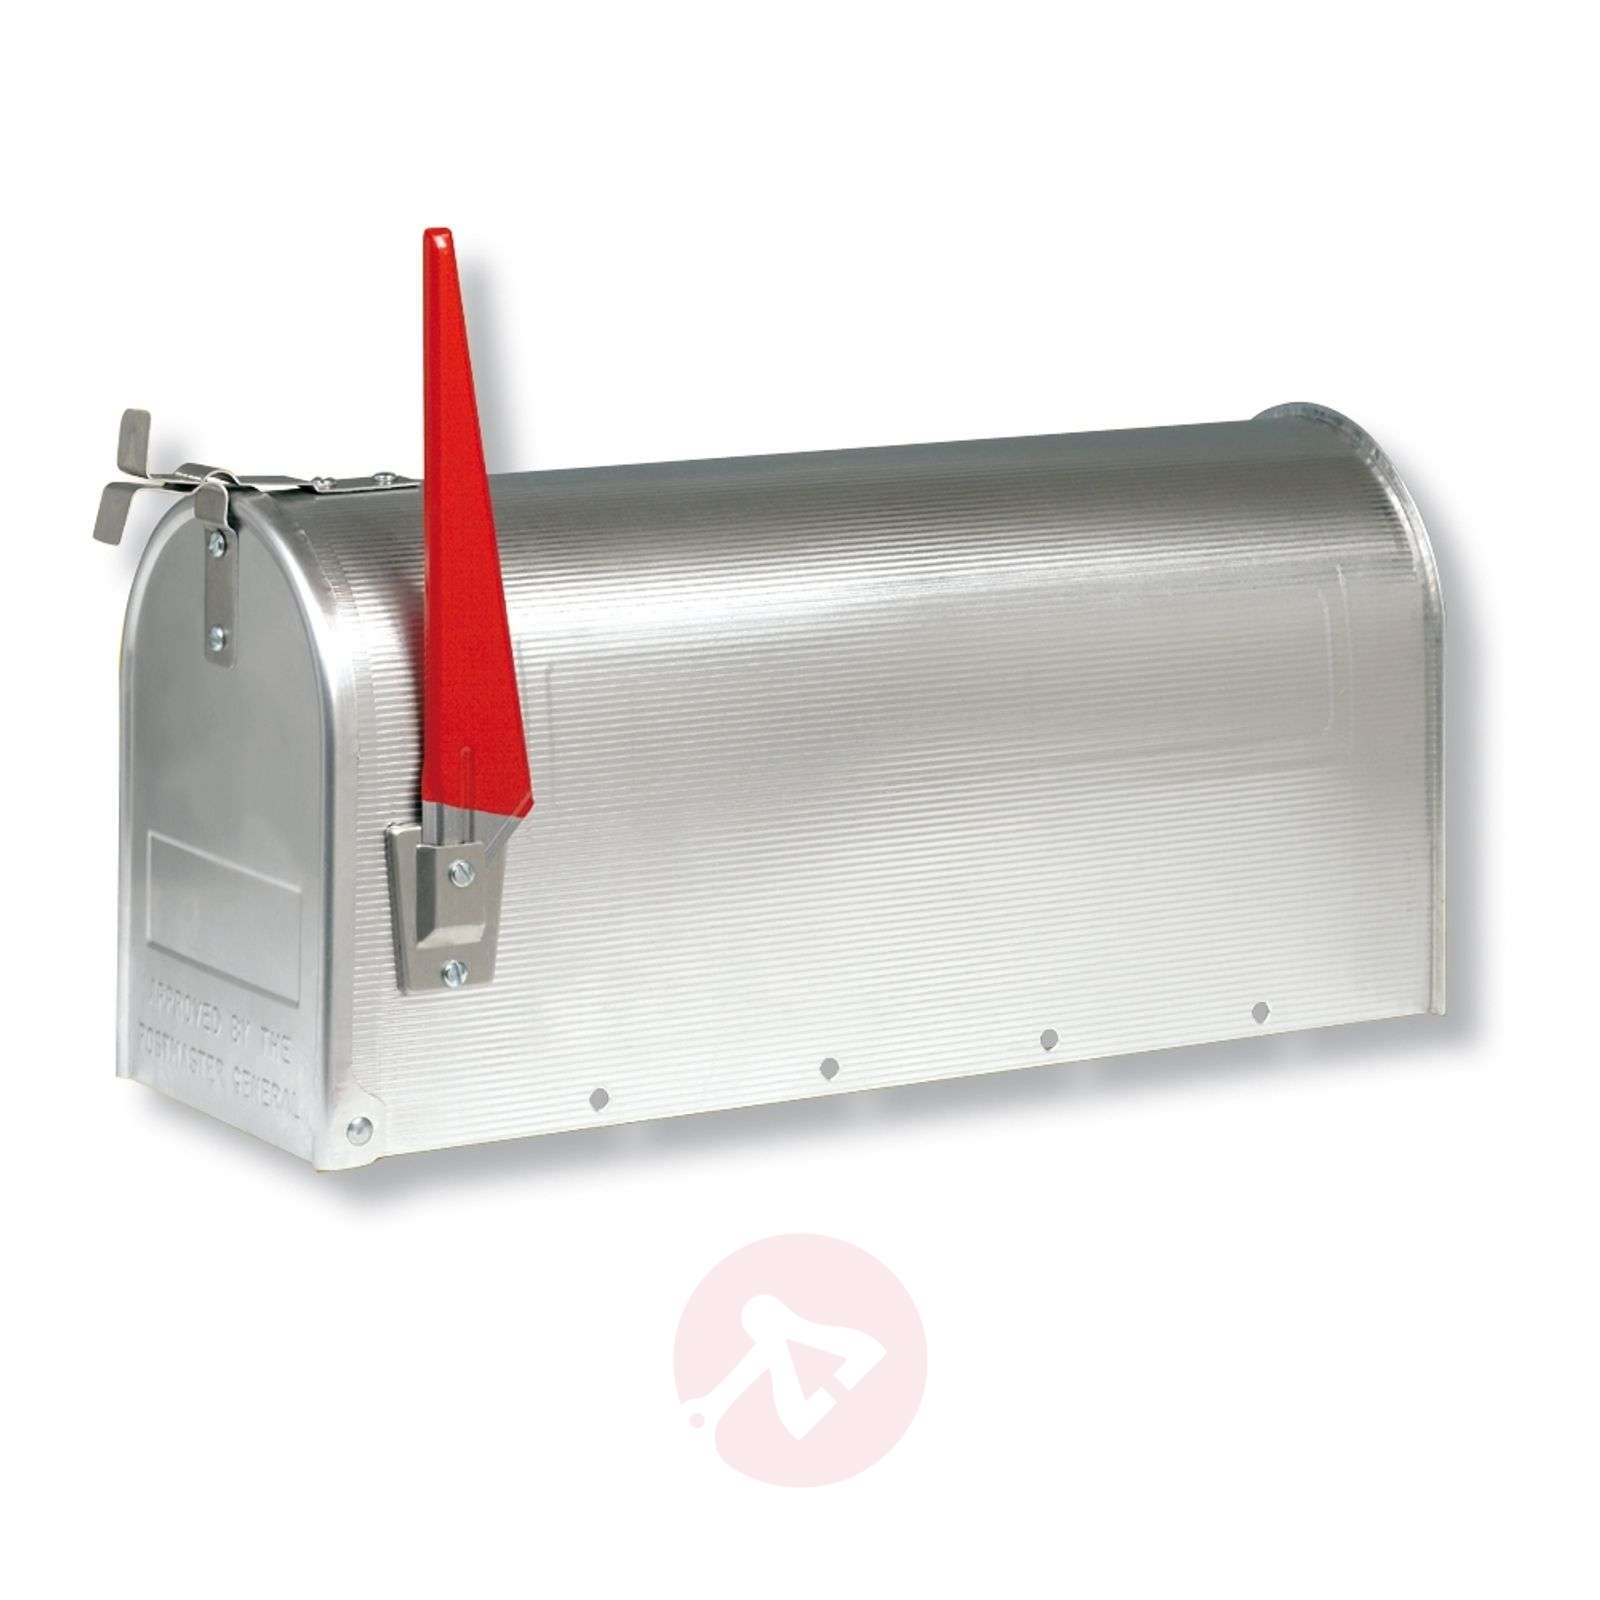 US mailbox with pivotable flag-1532116X-01